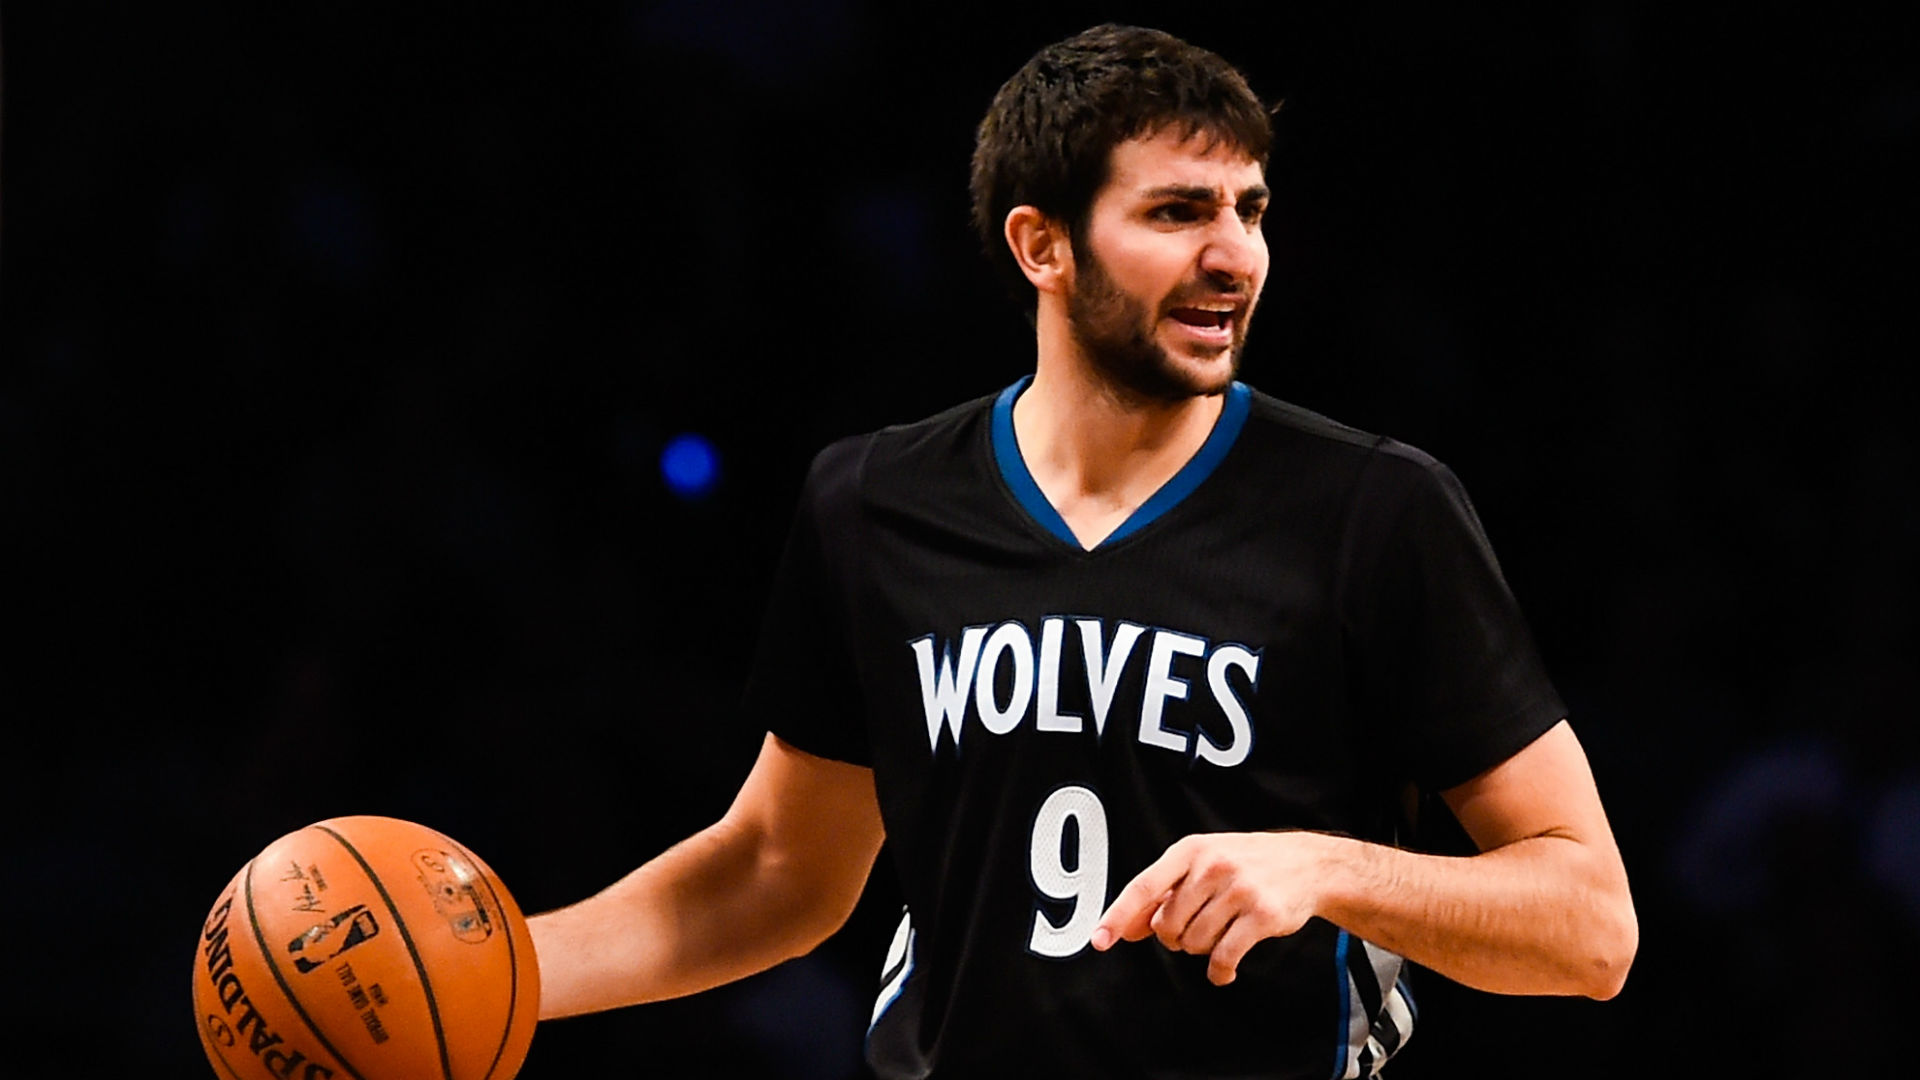 Timberwolves are reportedly including Ricky Rubio in trade offers